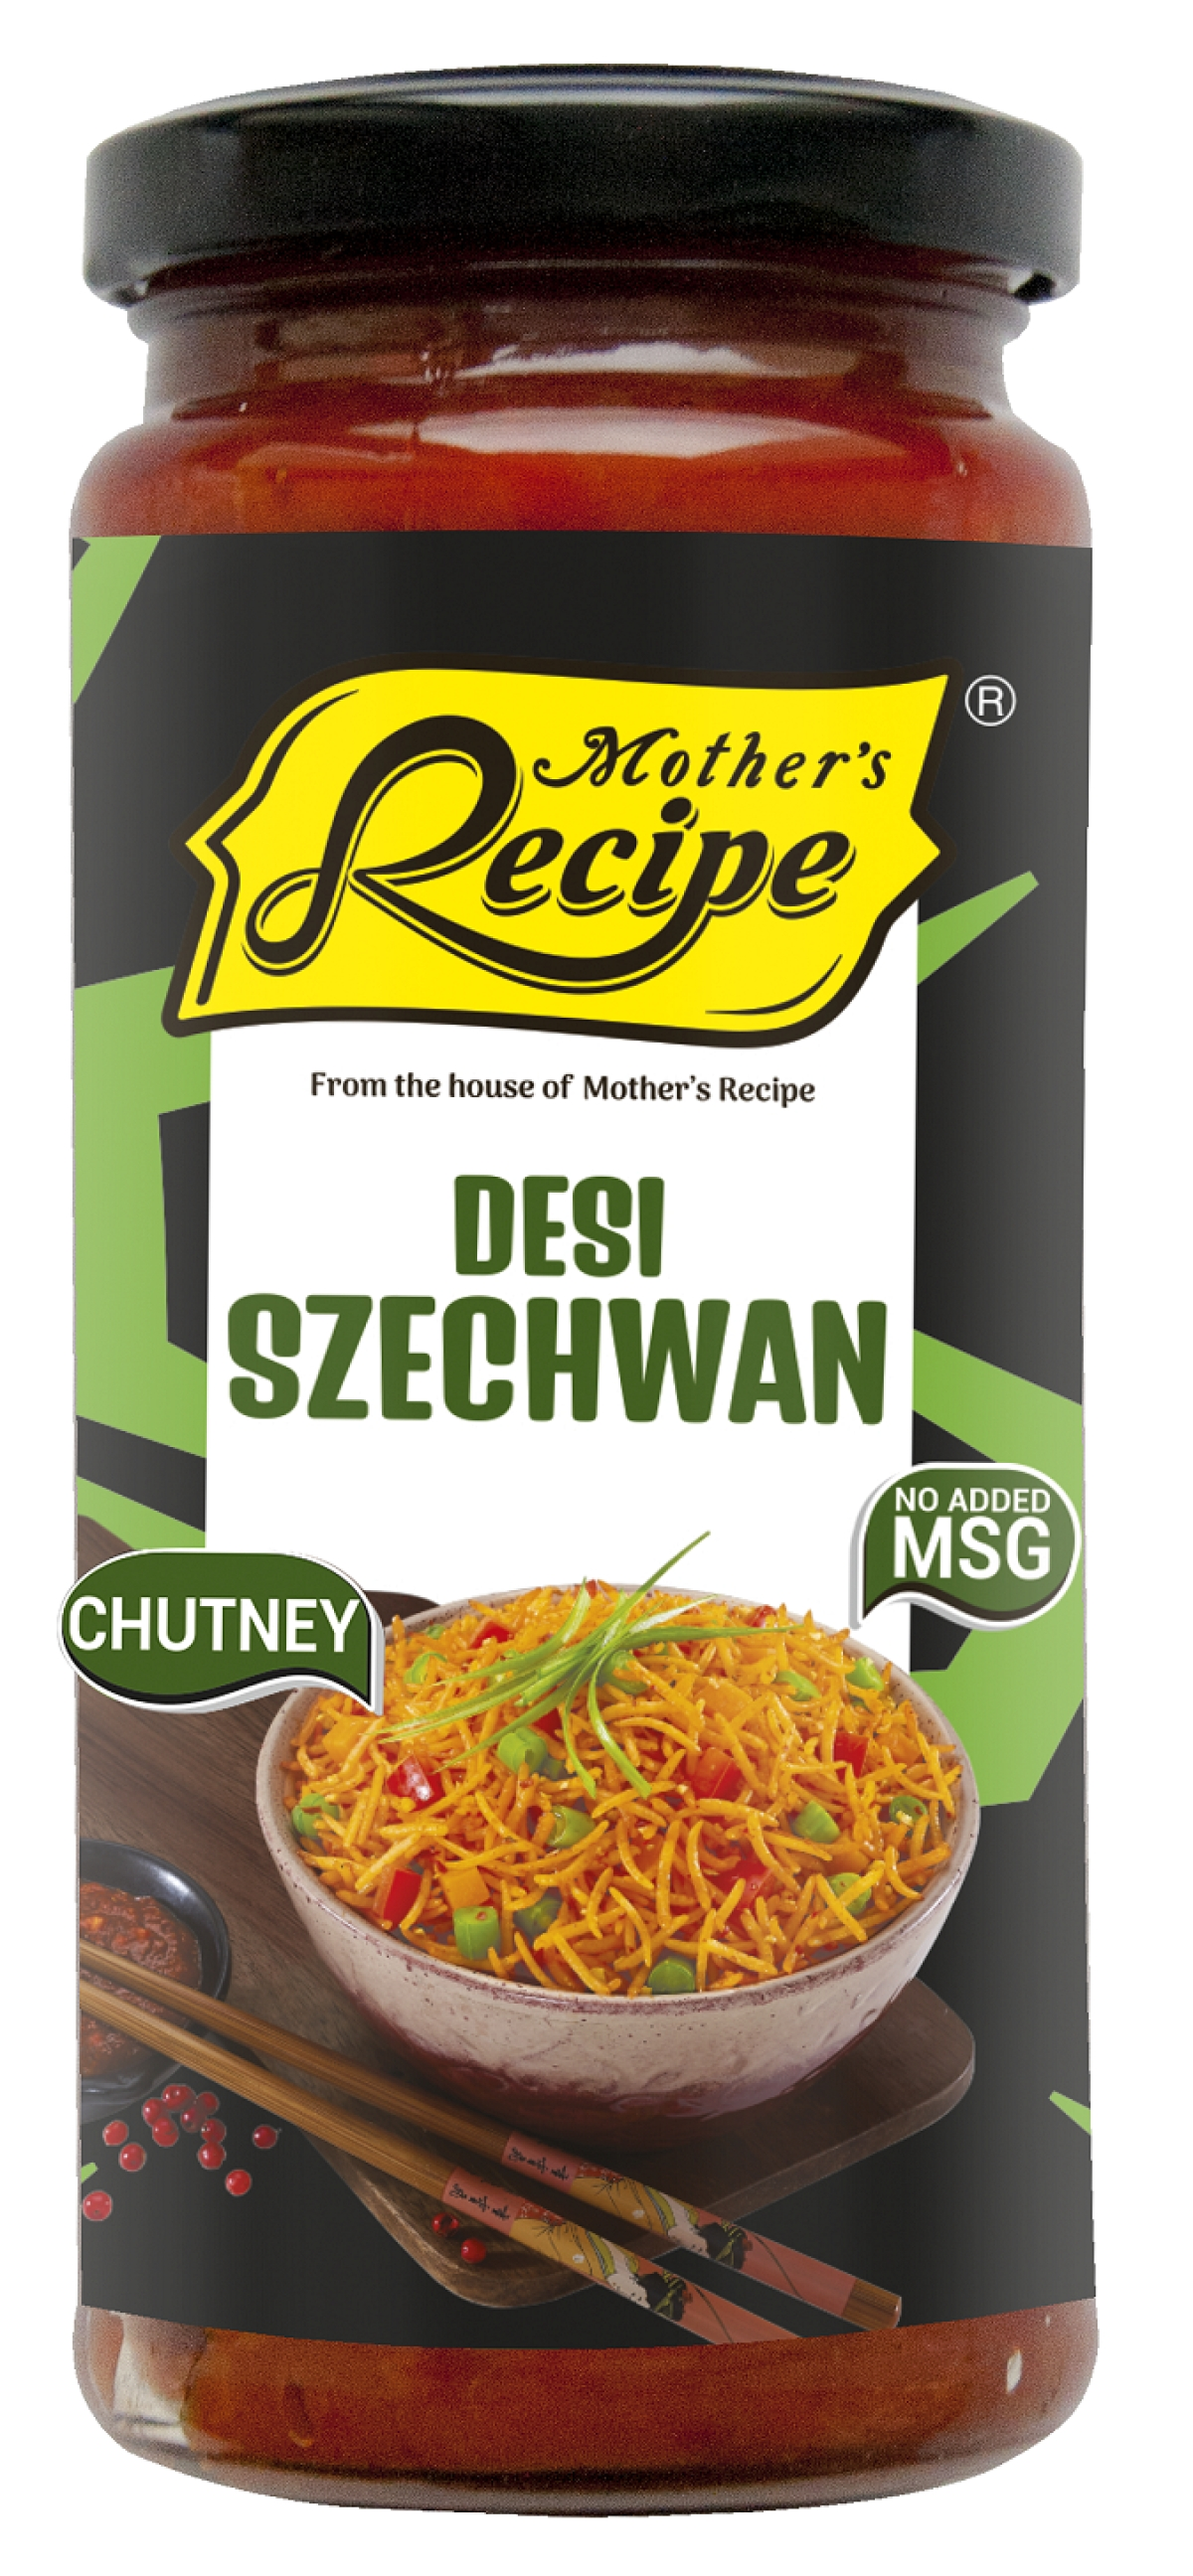 Mother's Recipe forays into chutneys segment with Desi Szechwan sauce